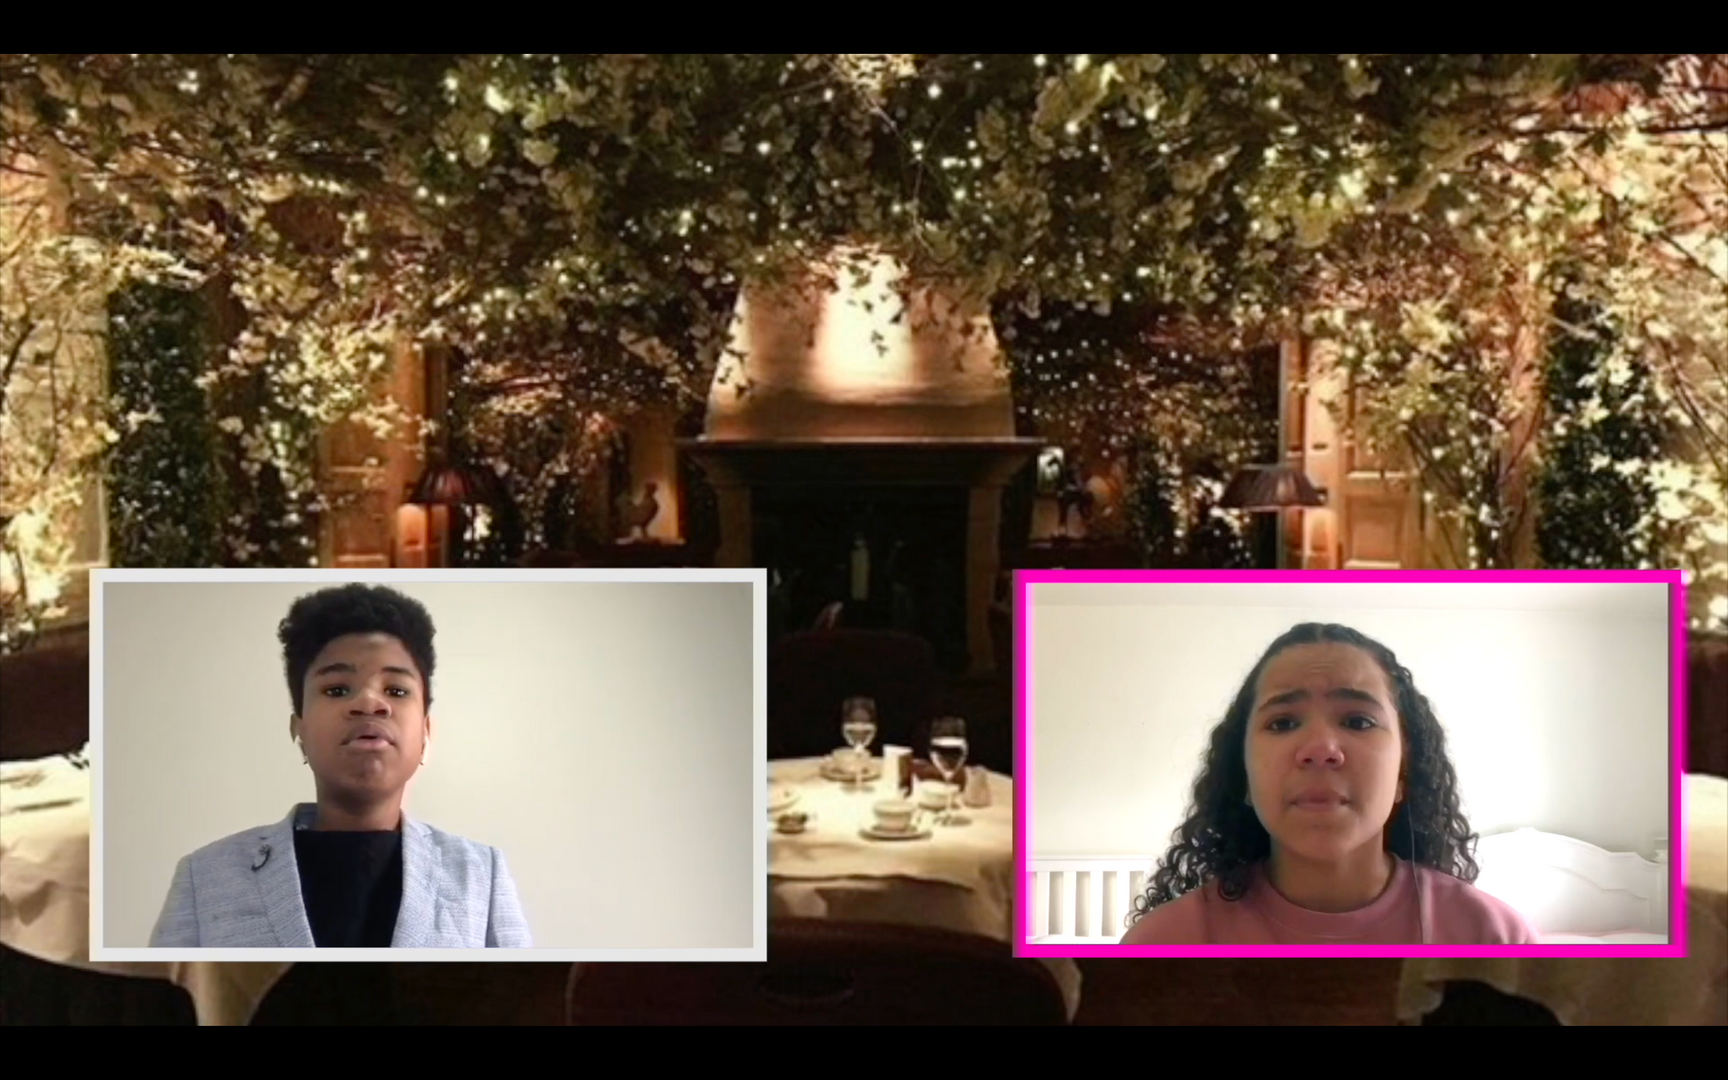 Two students in virtual screen boxes in front in a fancy restaurant